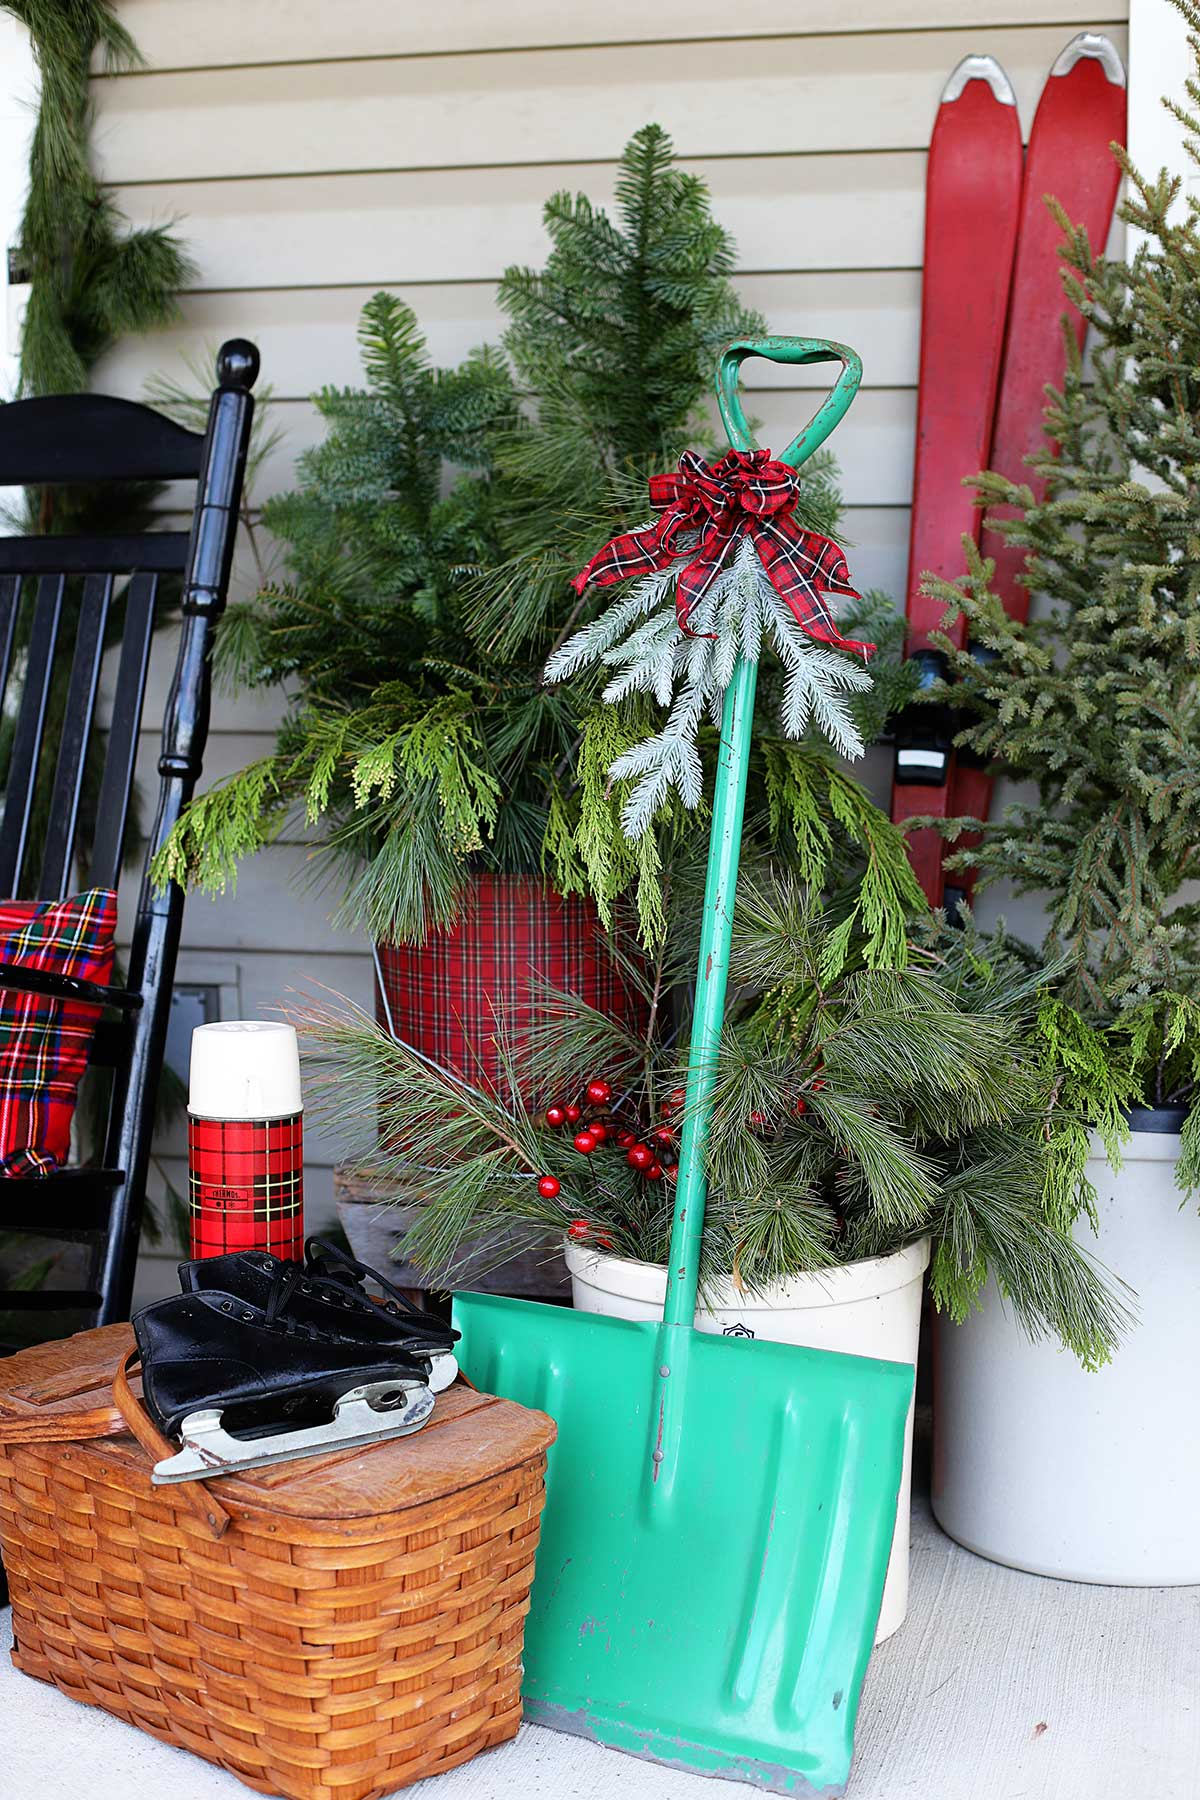 vintage skates, snow shovel and picnic basket on porch for Christmas decor